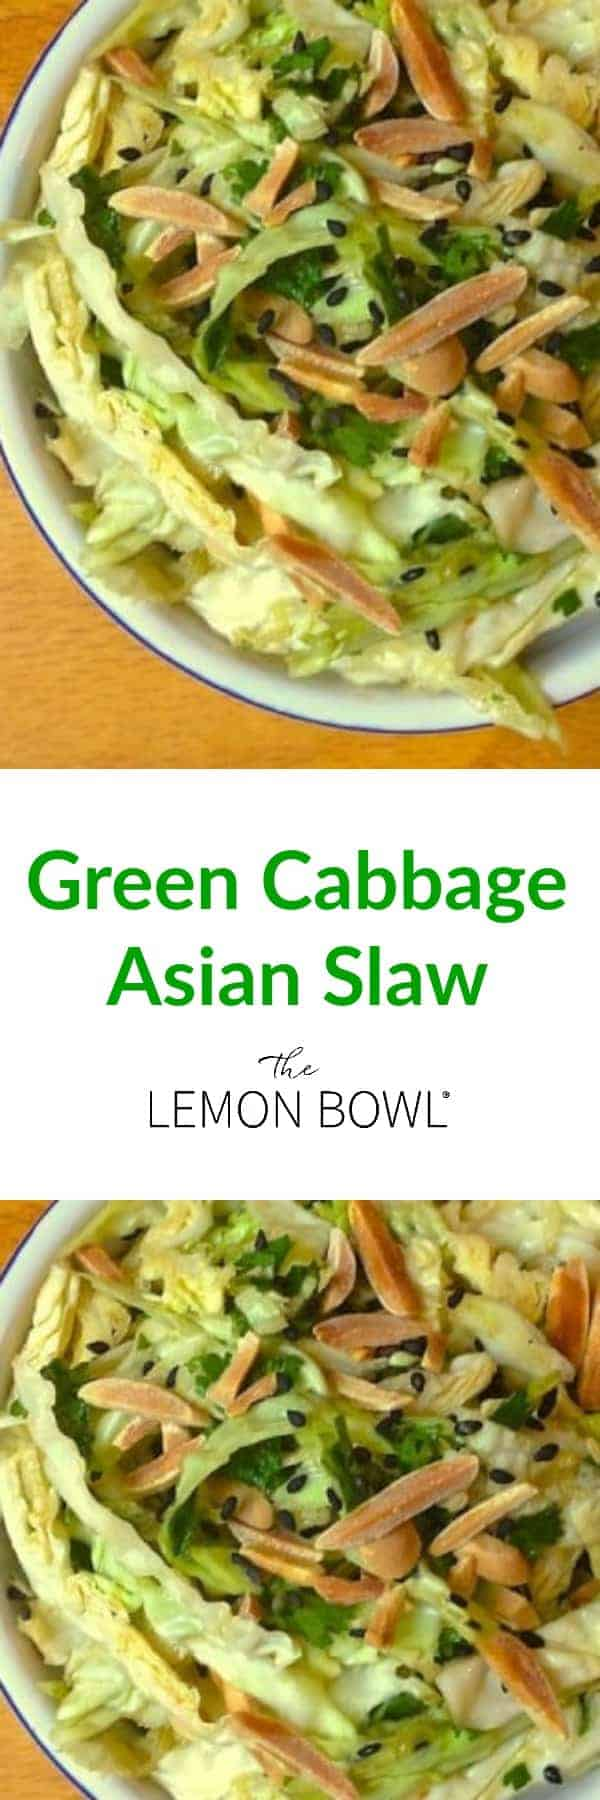 Green Cabbage Asian Slaw